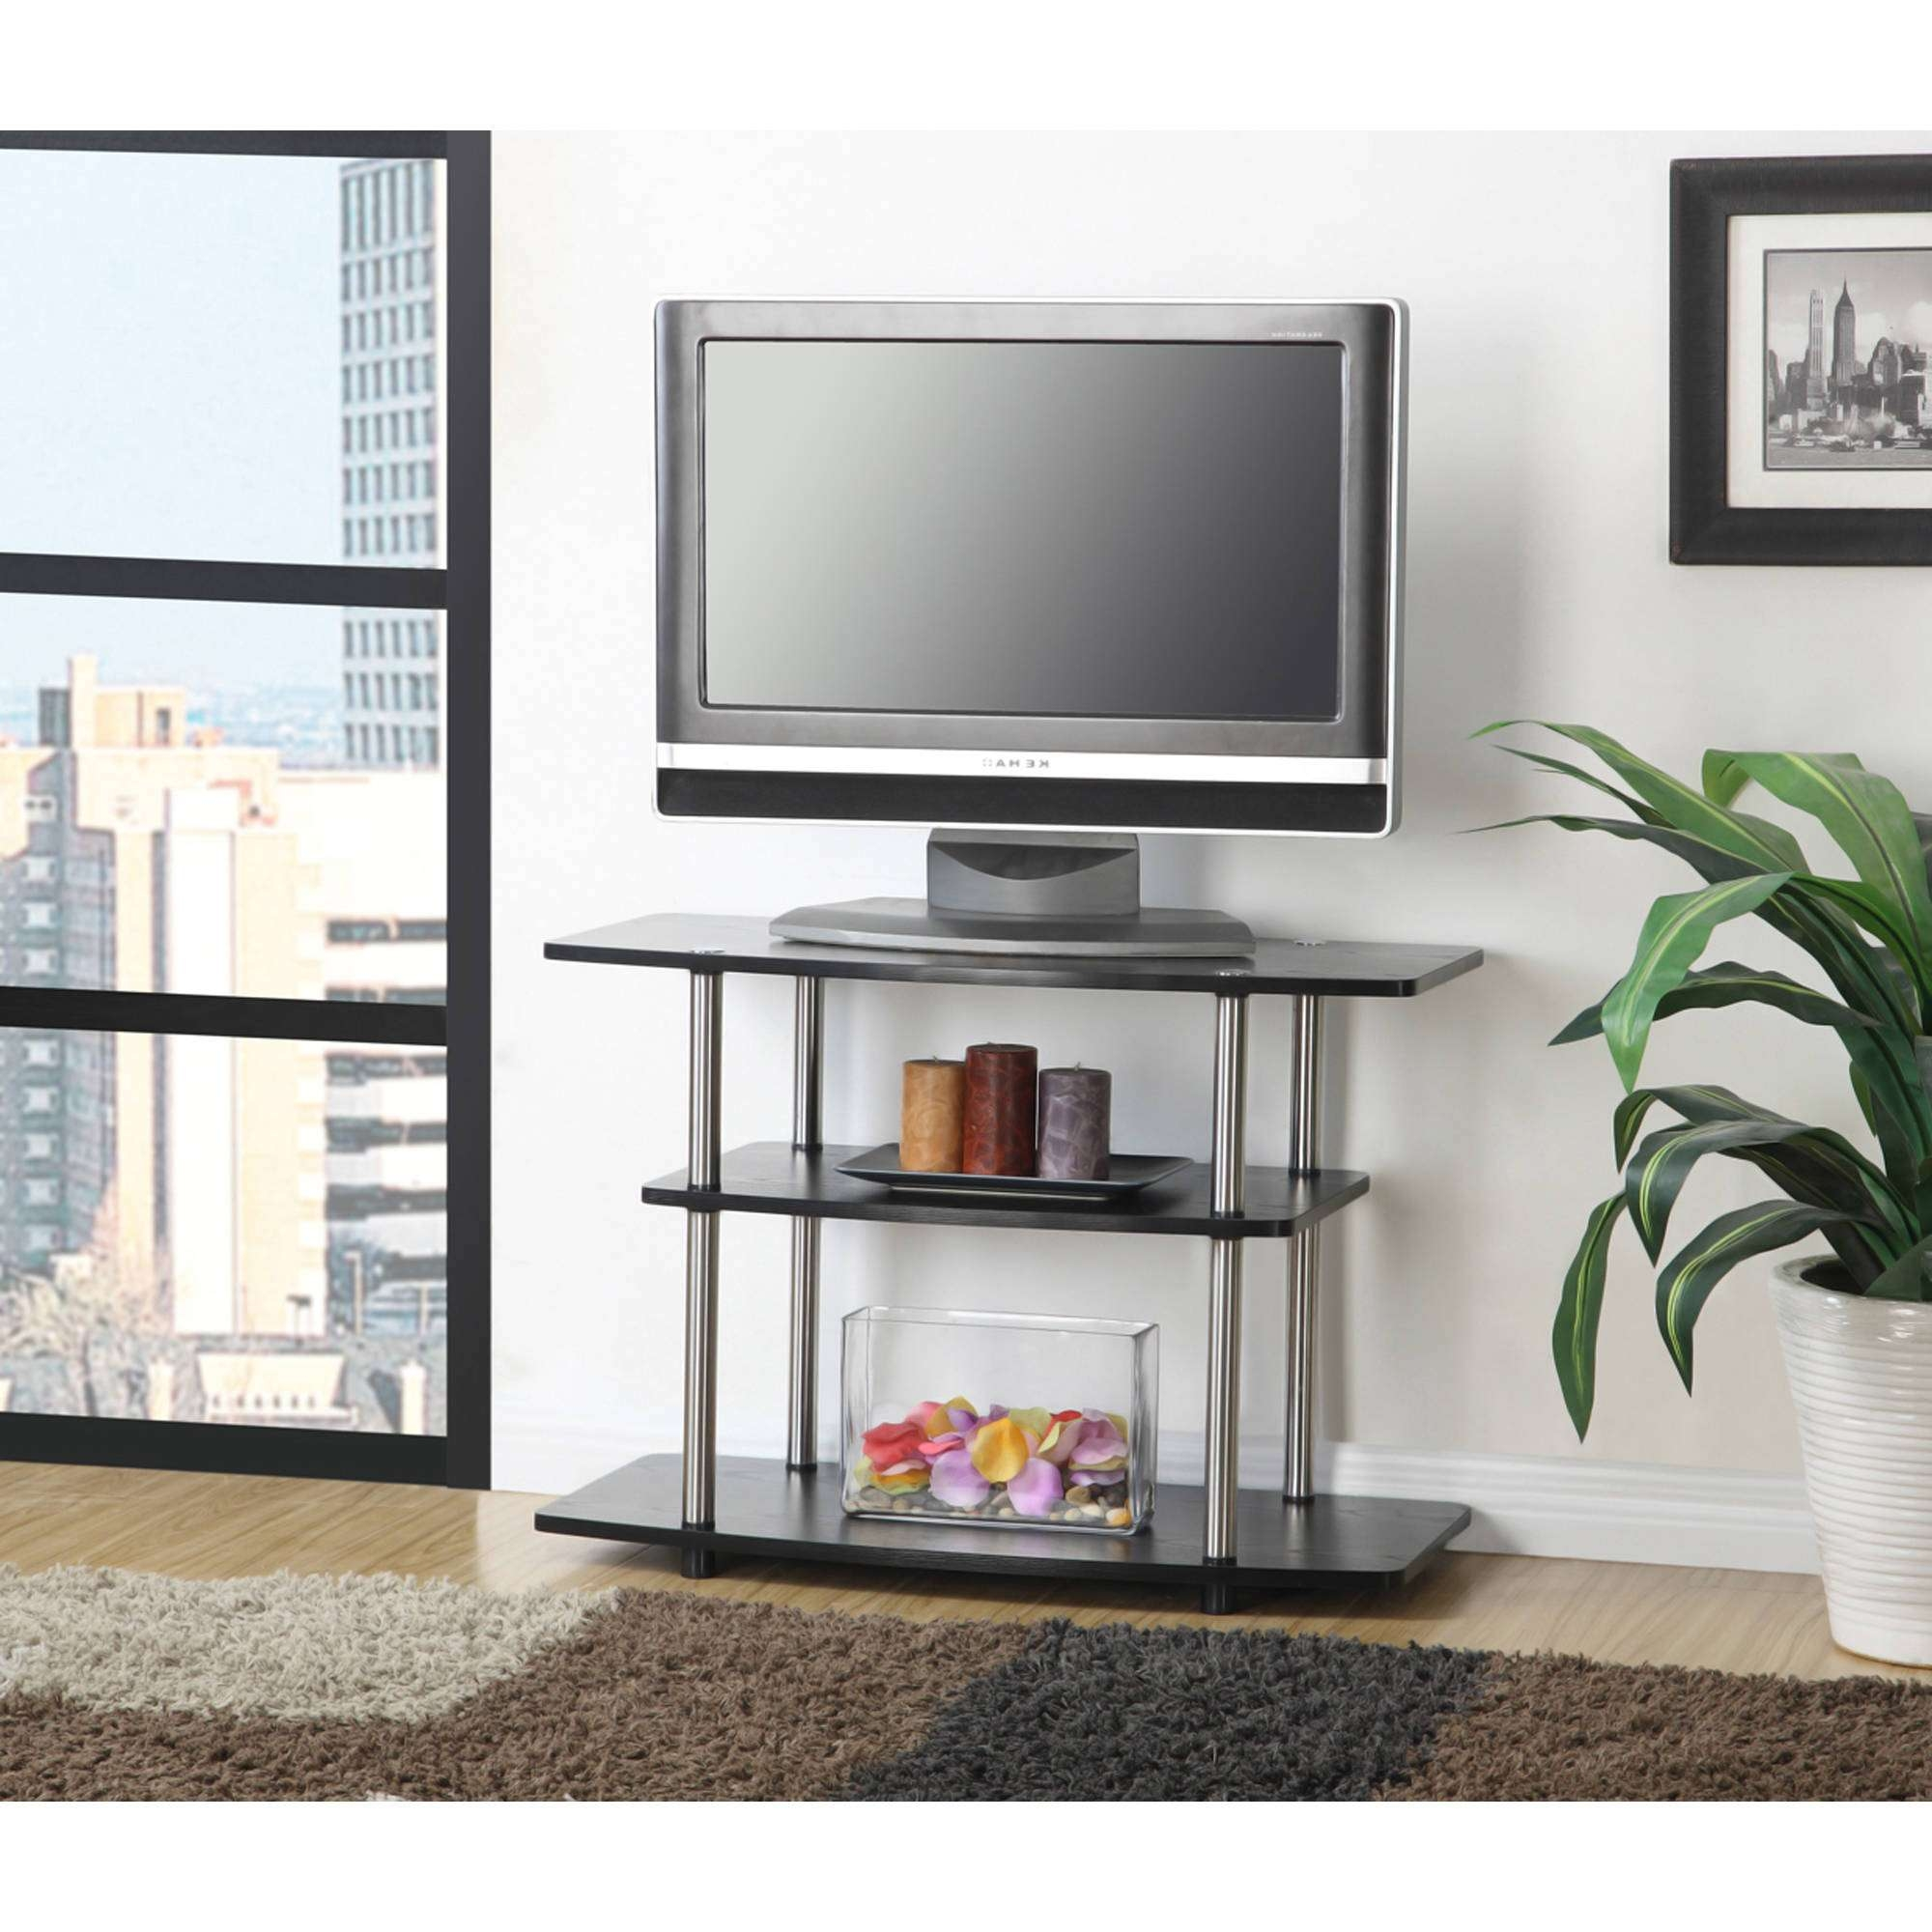 Innovative Tall Tv Stand Ikea 41 59h Along With 40 60 Flat Screens With Regard To Tall Black Tv Cabinets (View 20 of 20)